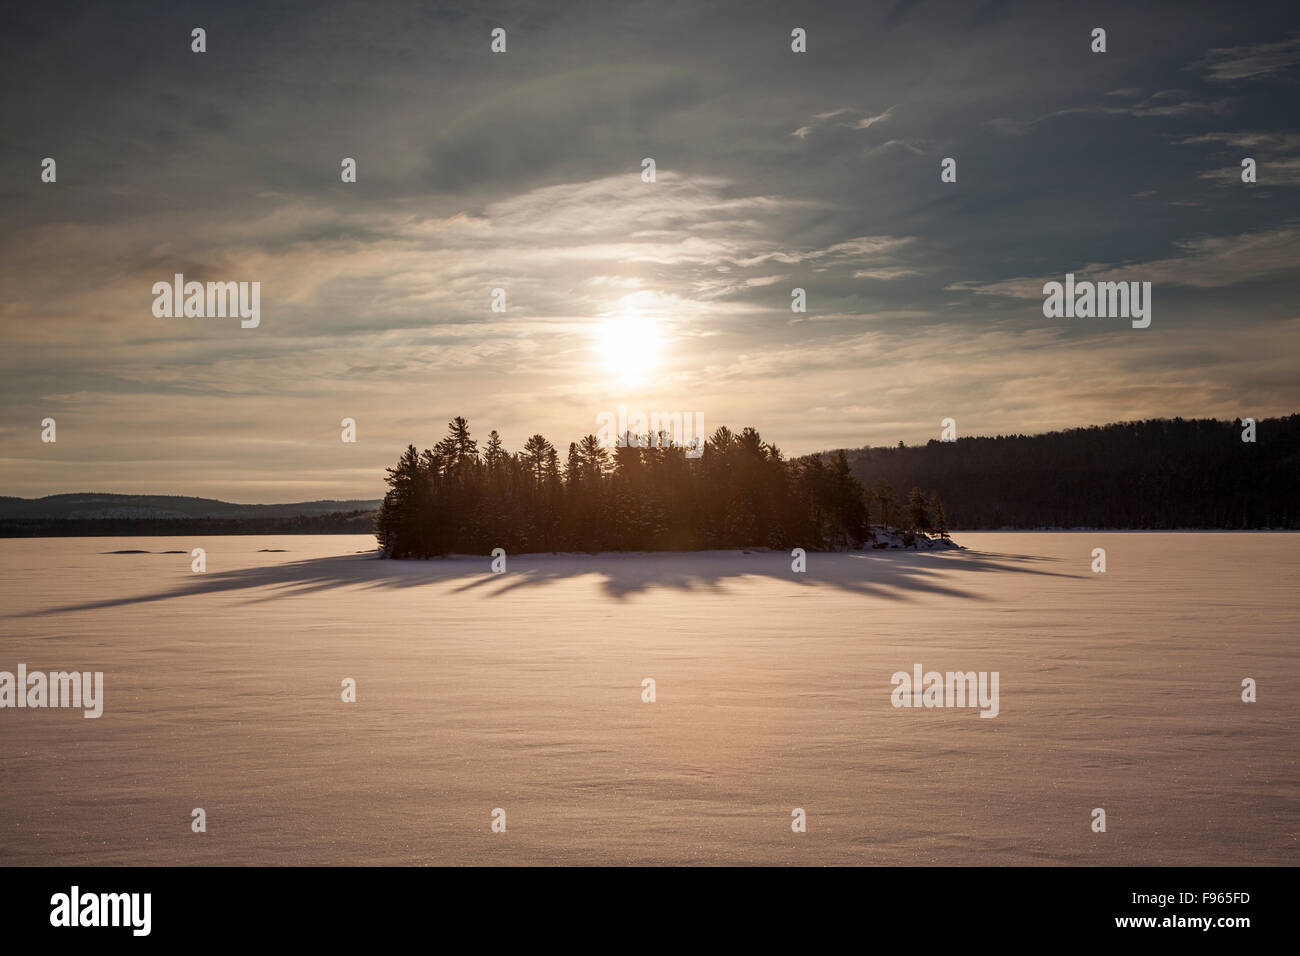 Sun rising over an island in the frozen Lake of Two Rivers, Algonquin Provincial Park, Ontario, Canada - Stock Image